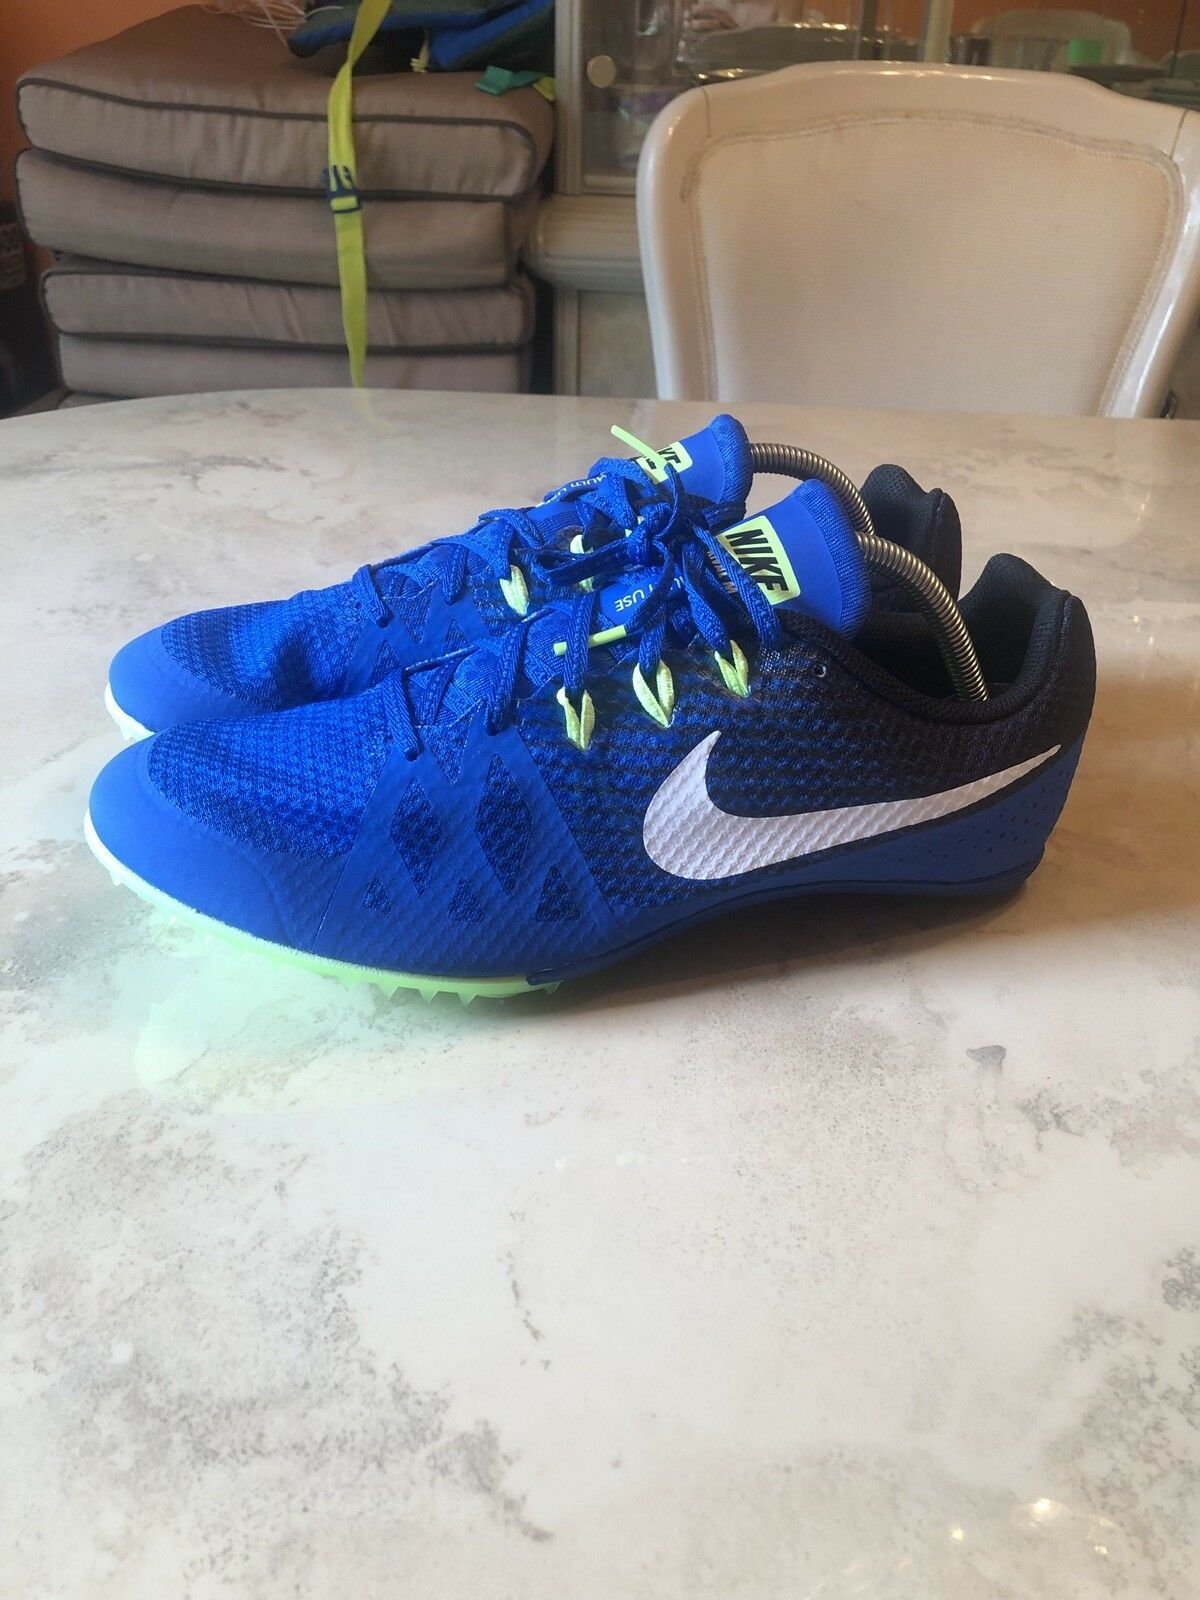 Nike Sprint Zoom rival hombre Track Sprint Nike Spikes Zapatos 806555 413 confortables 1ed79c